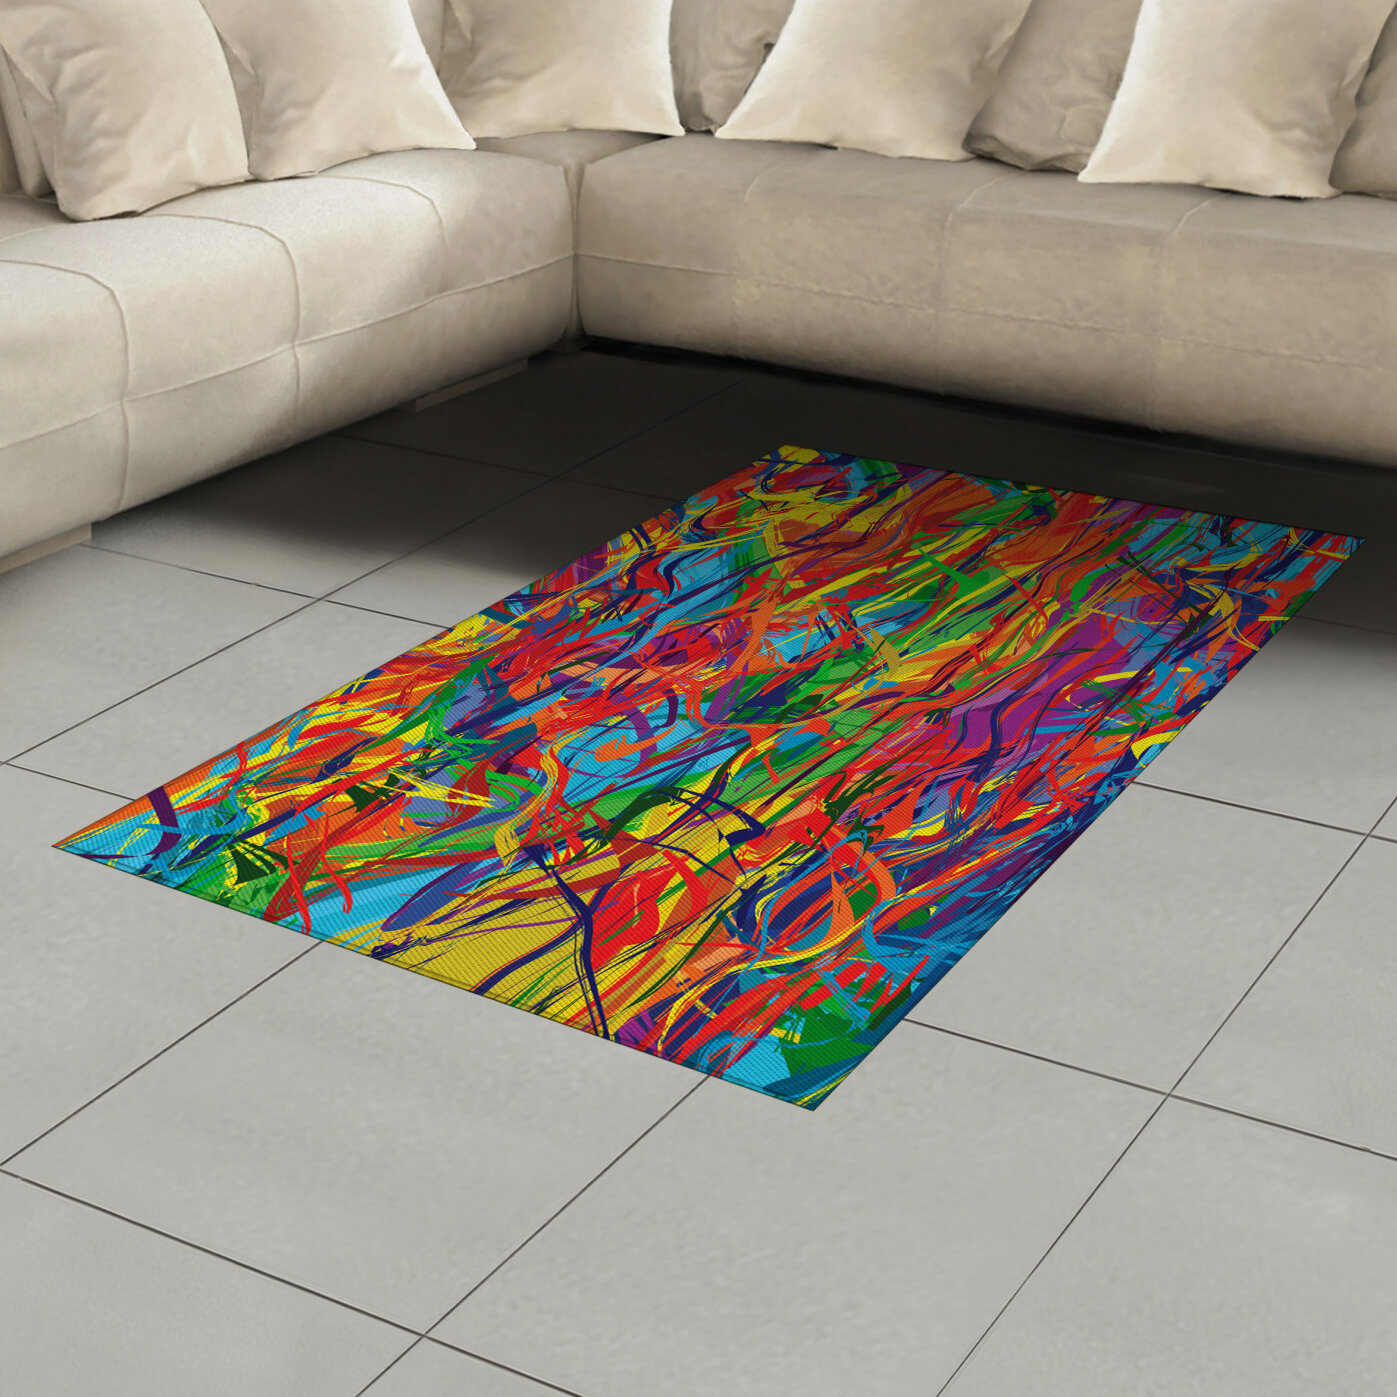 East Urban Home Ambesonne Modern Area Rug Circled Rainbow Like Colourful Lines Like Contemporary Oil Painting Style Artwork Flat Woven Accent Rug For Living Room Bedroom Dining Room 2 6 X 5